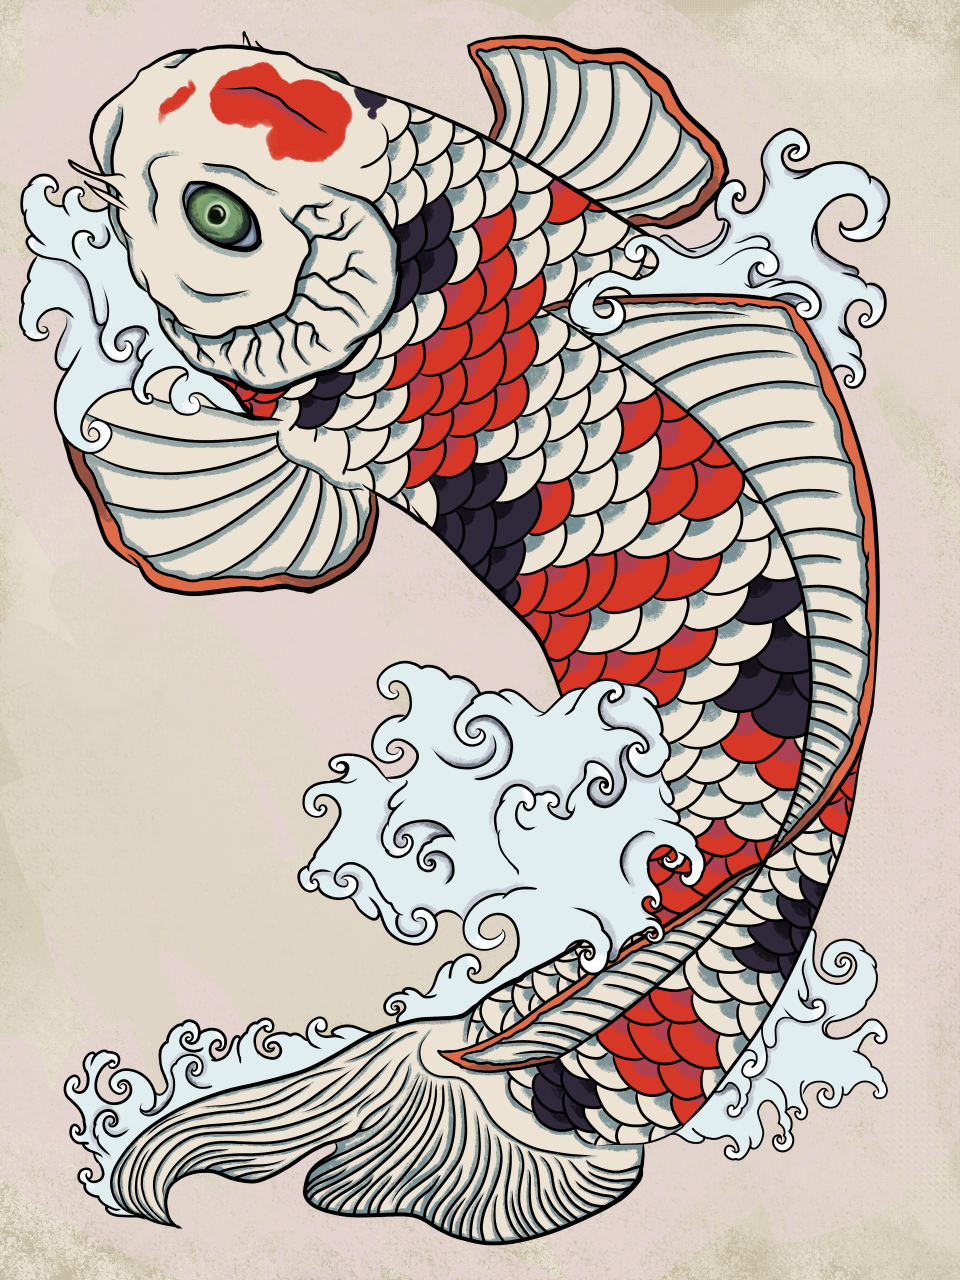 One of my best attempts at doing an irezumi-style koi carp